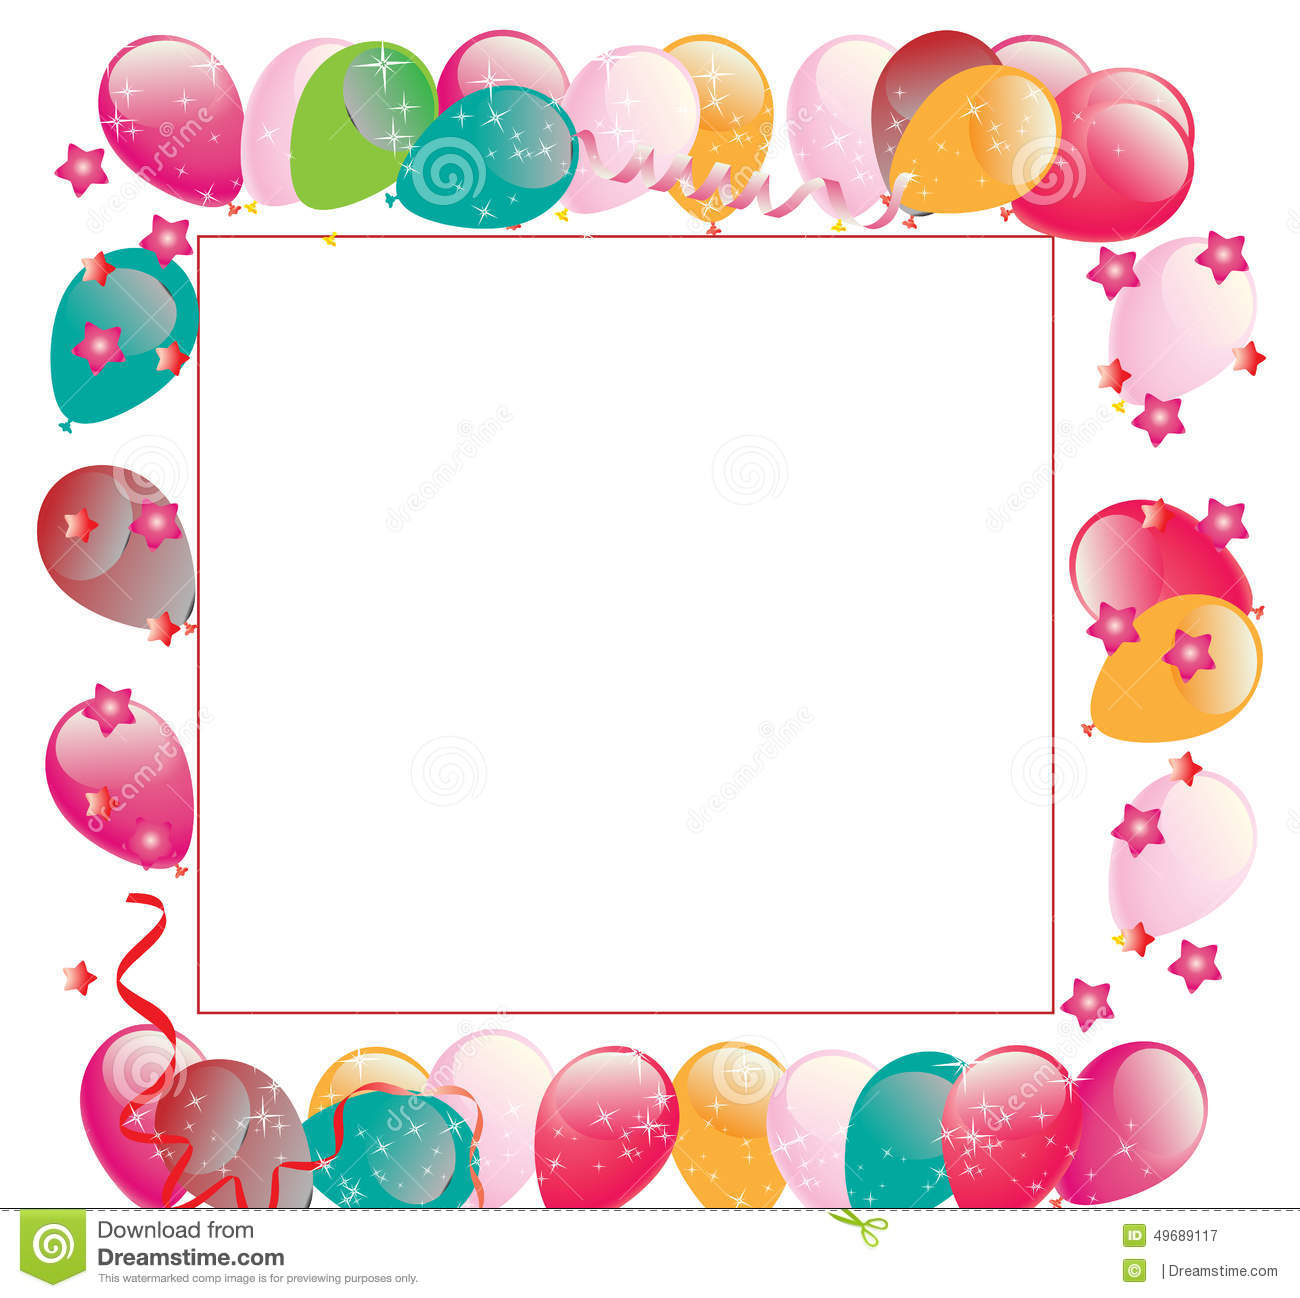 balloon frame